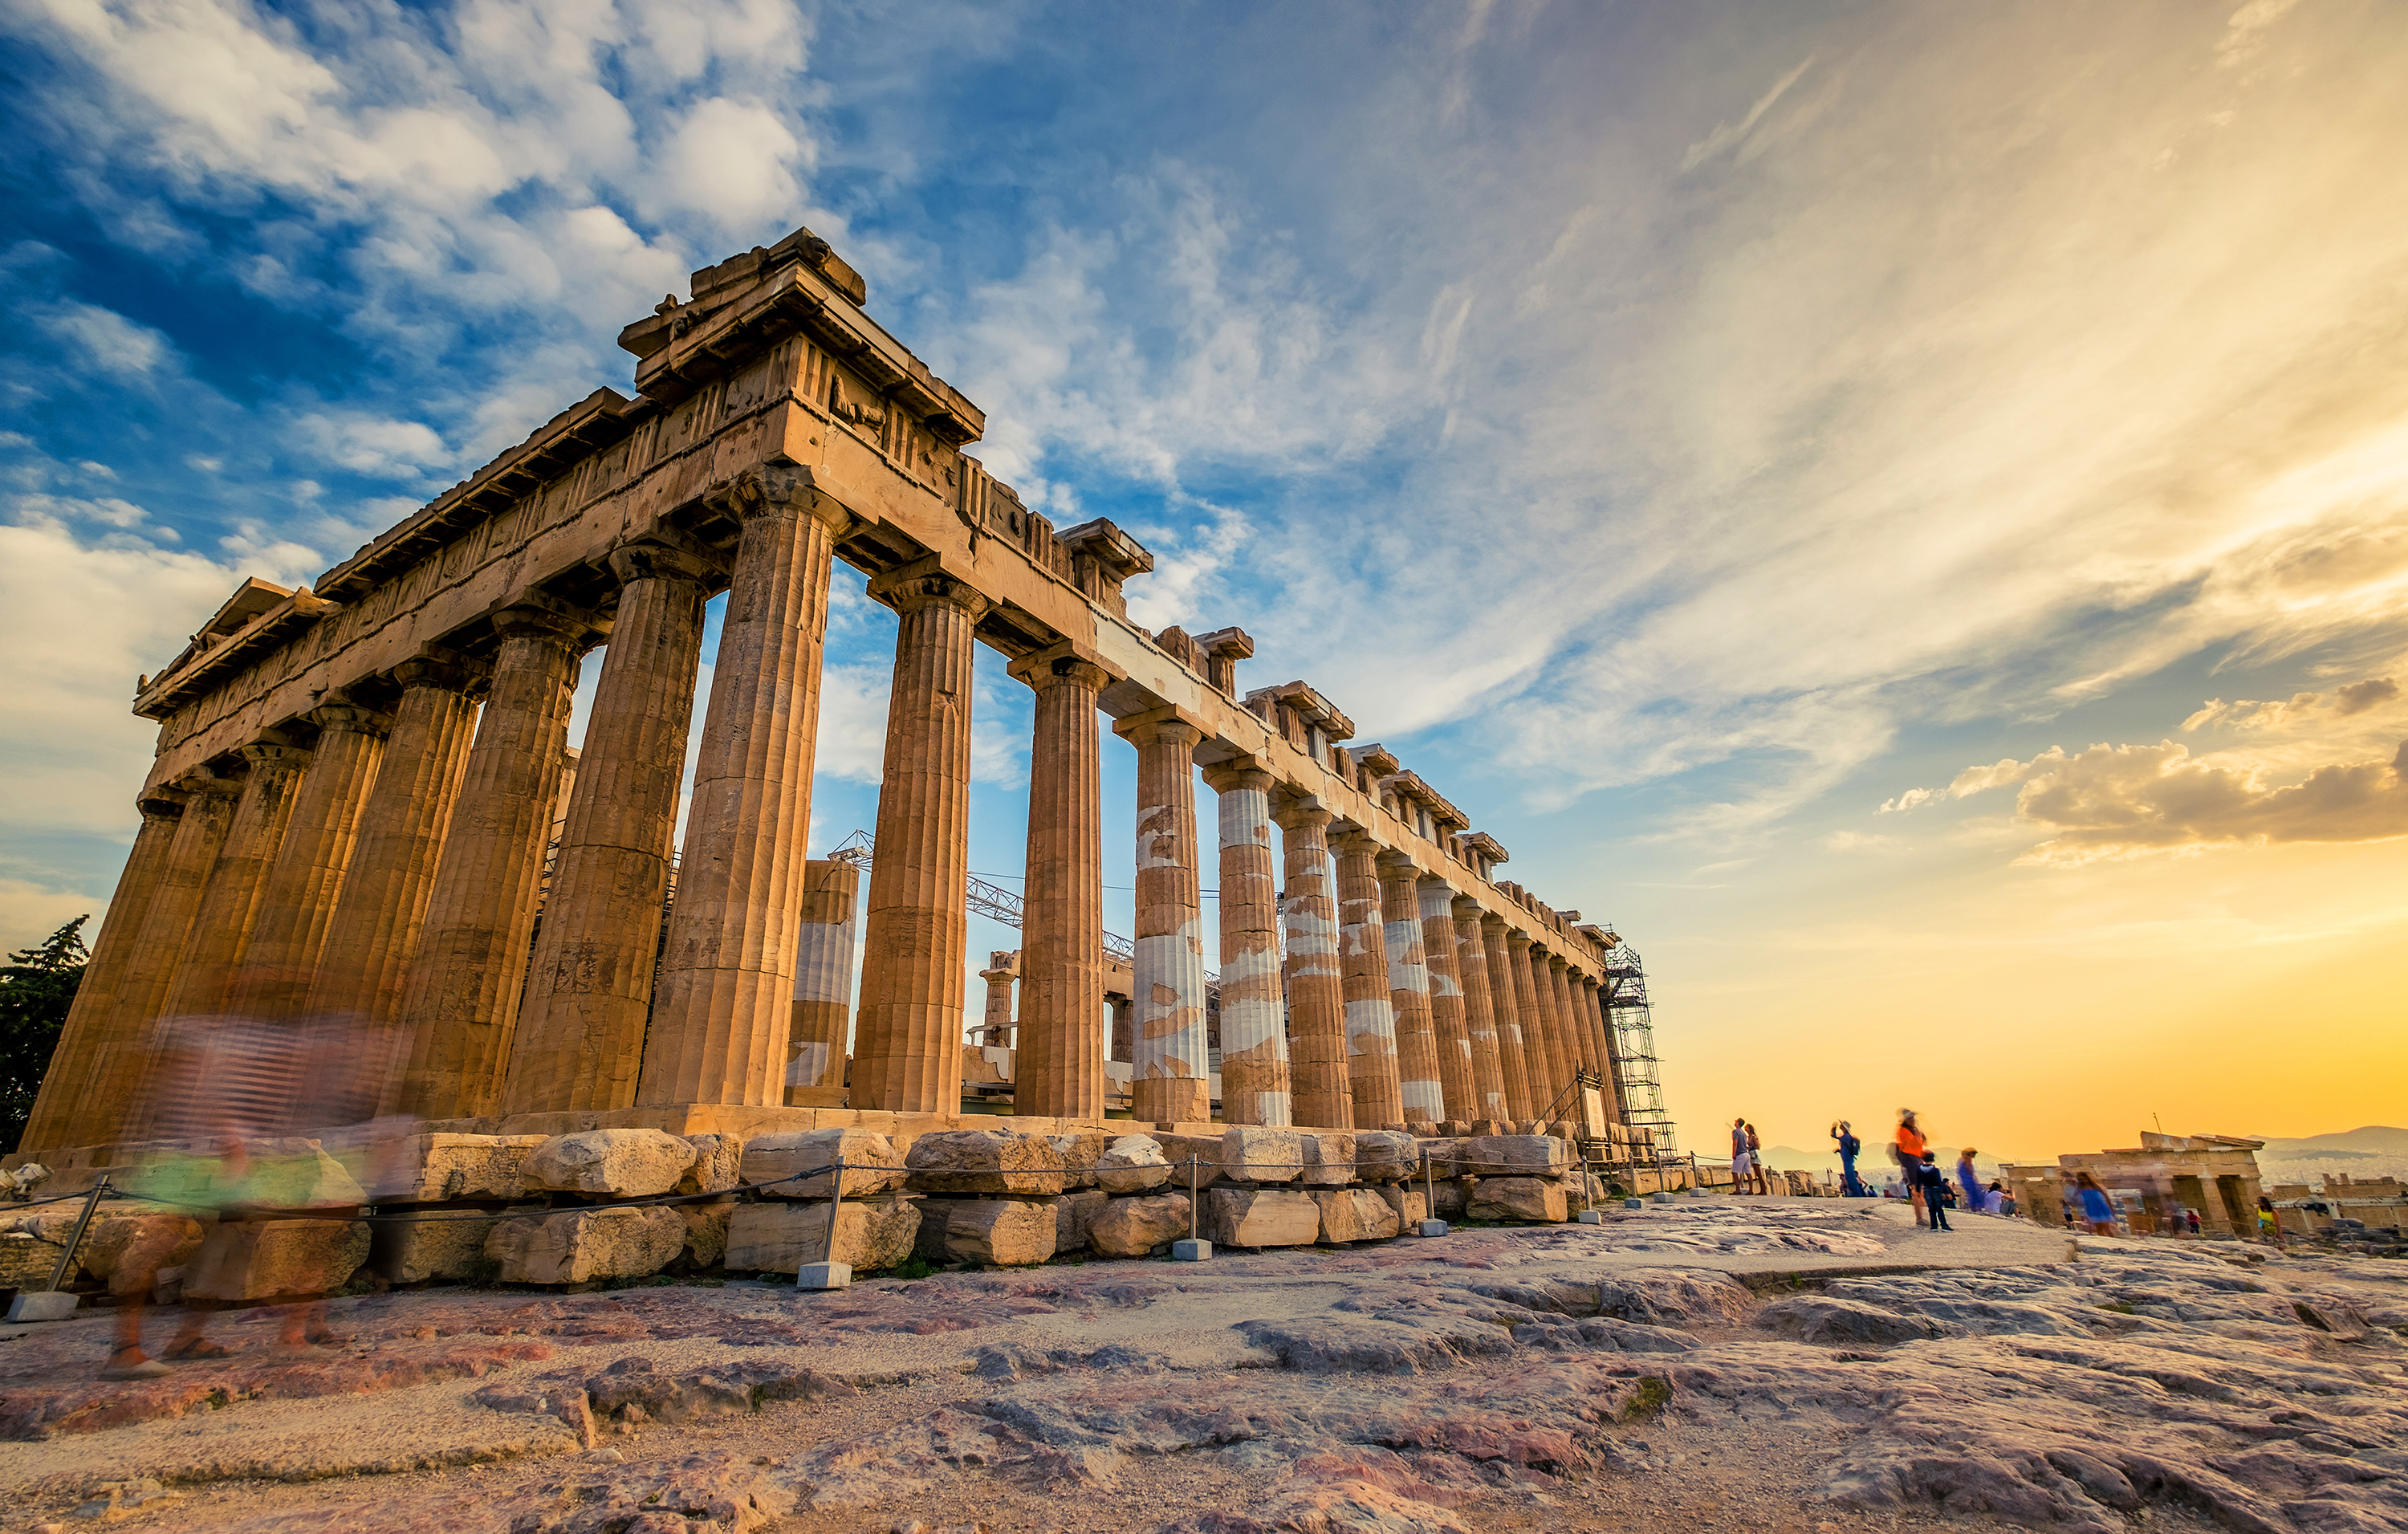 Parthenon at sunset